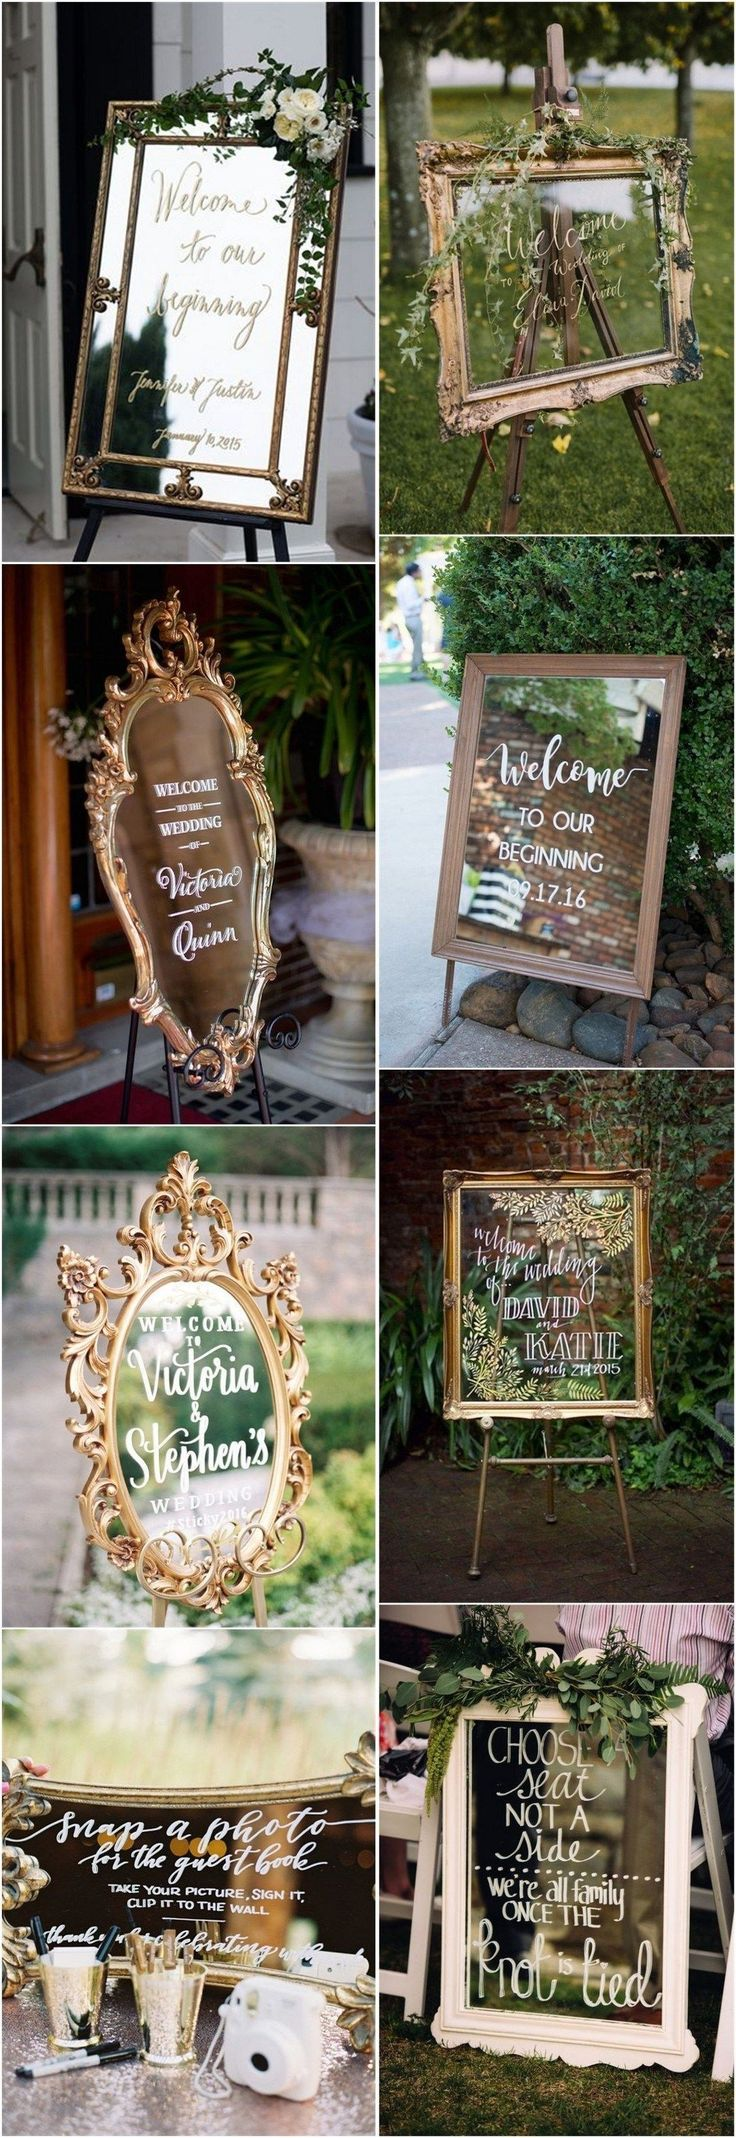 DIY Wedding Decoration To Save Budget For Your Big Day (8) #weddingdecoration